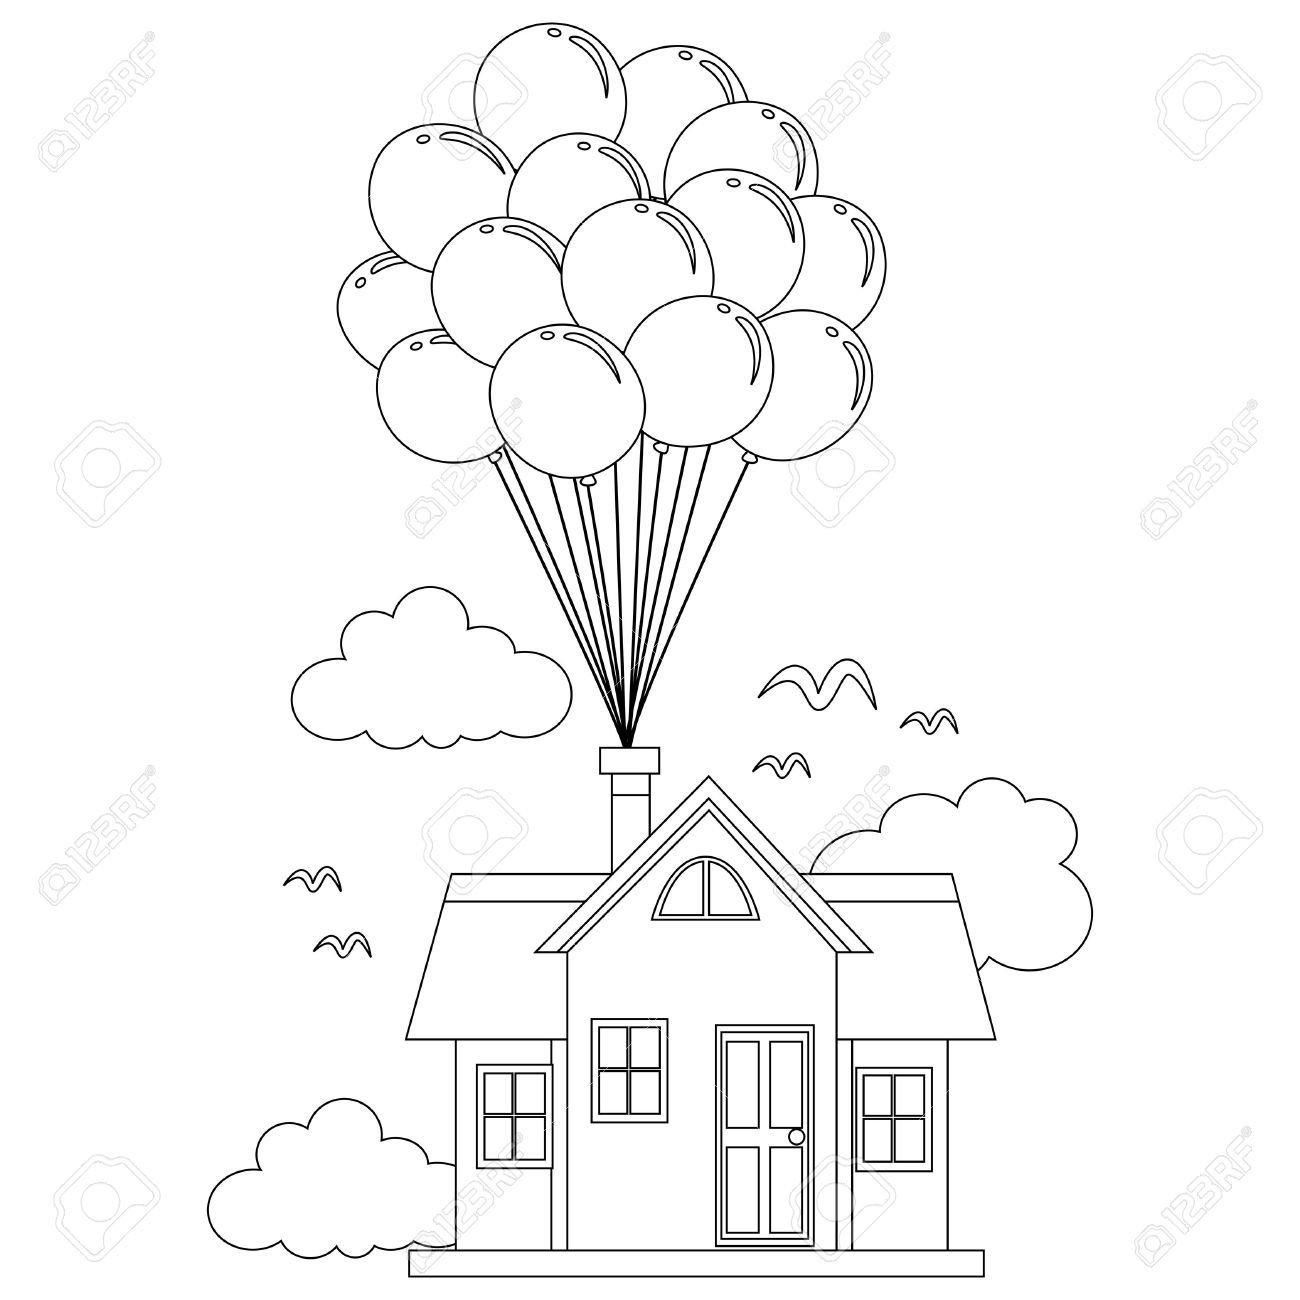 Coloring Book Outlined House With Balloon Balon Illustrasyon Boyama Kitaplari Aplike Sablonlari